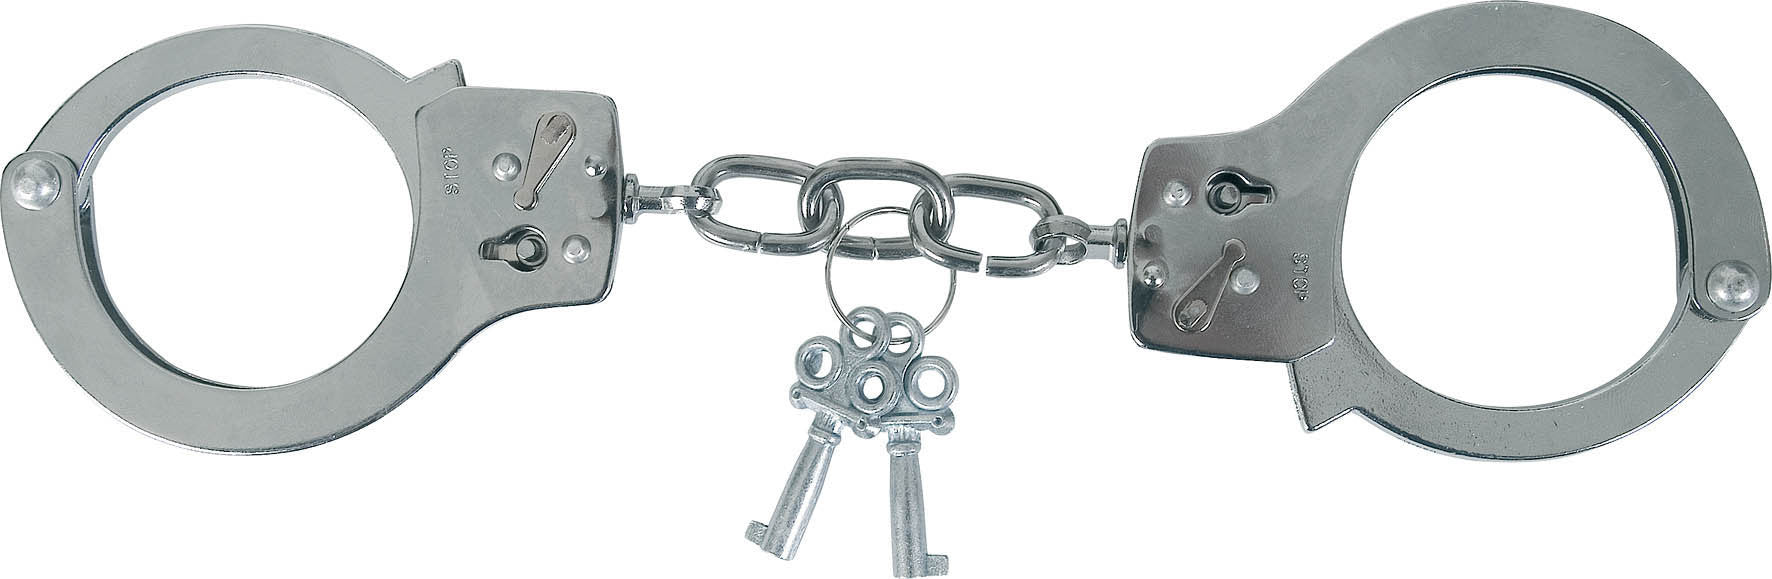 Standard Handcuffs For Police or Security Applications